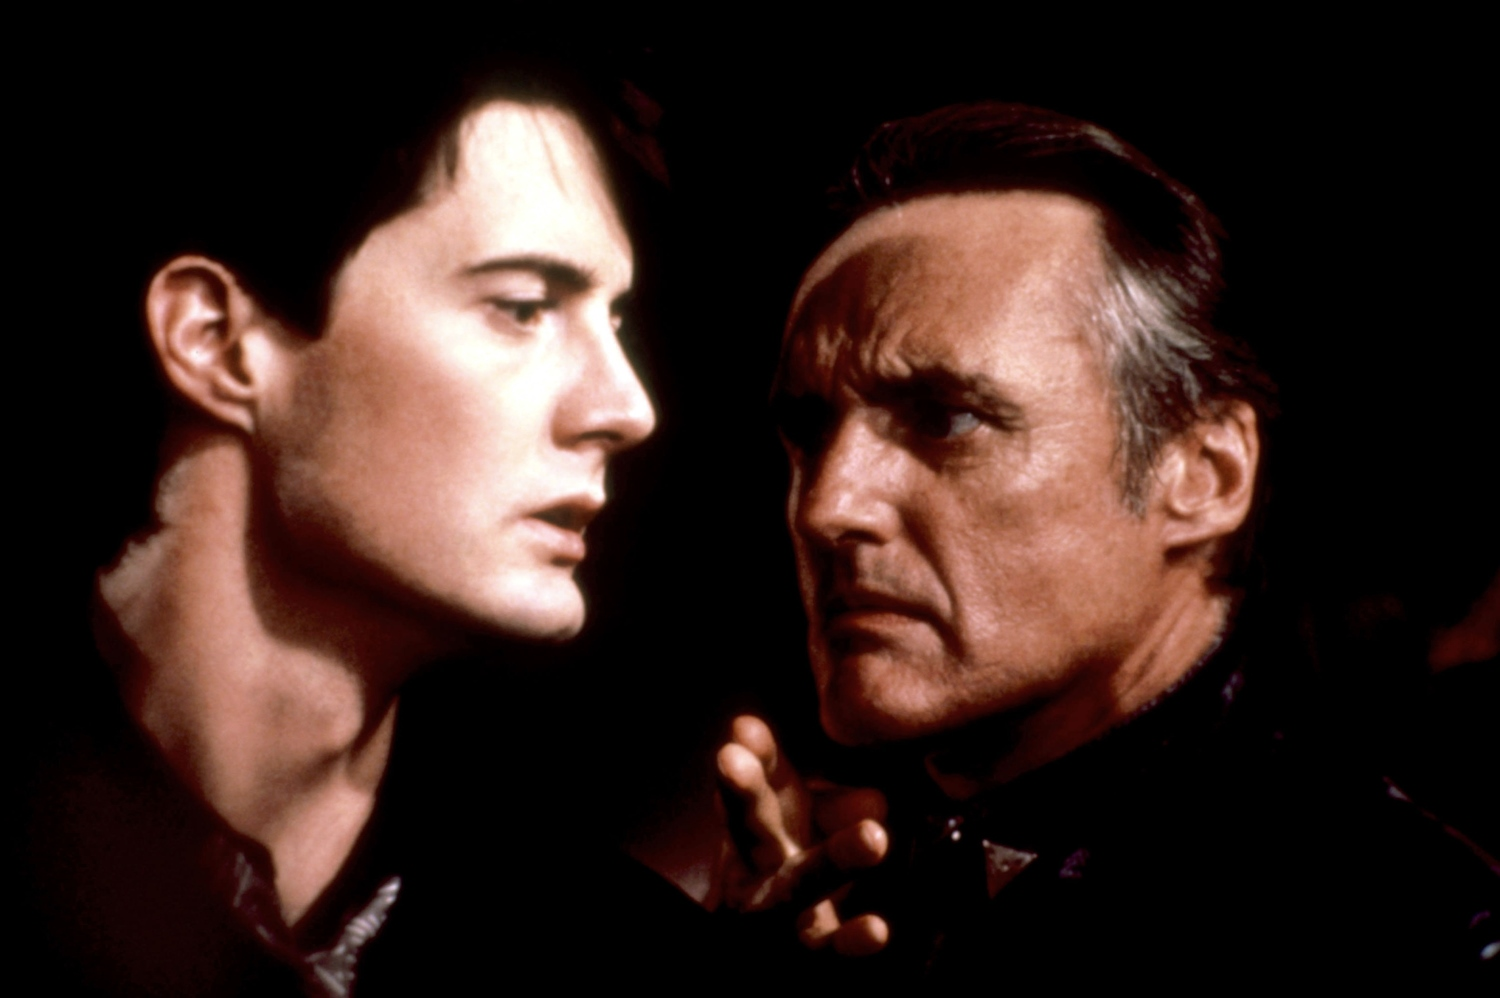 (l to r) Jeffrey (Kyle MacLachlan) and Frank (Dennis Hopper) in Blue Velvet (1986)